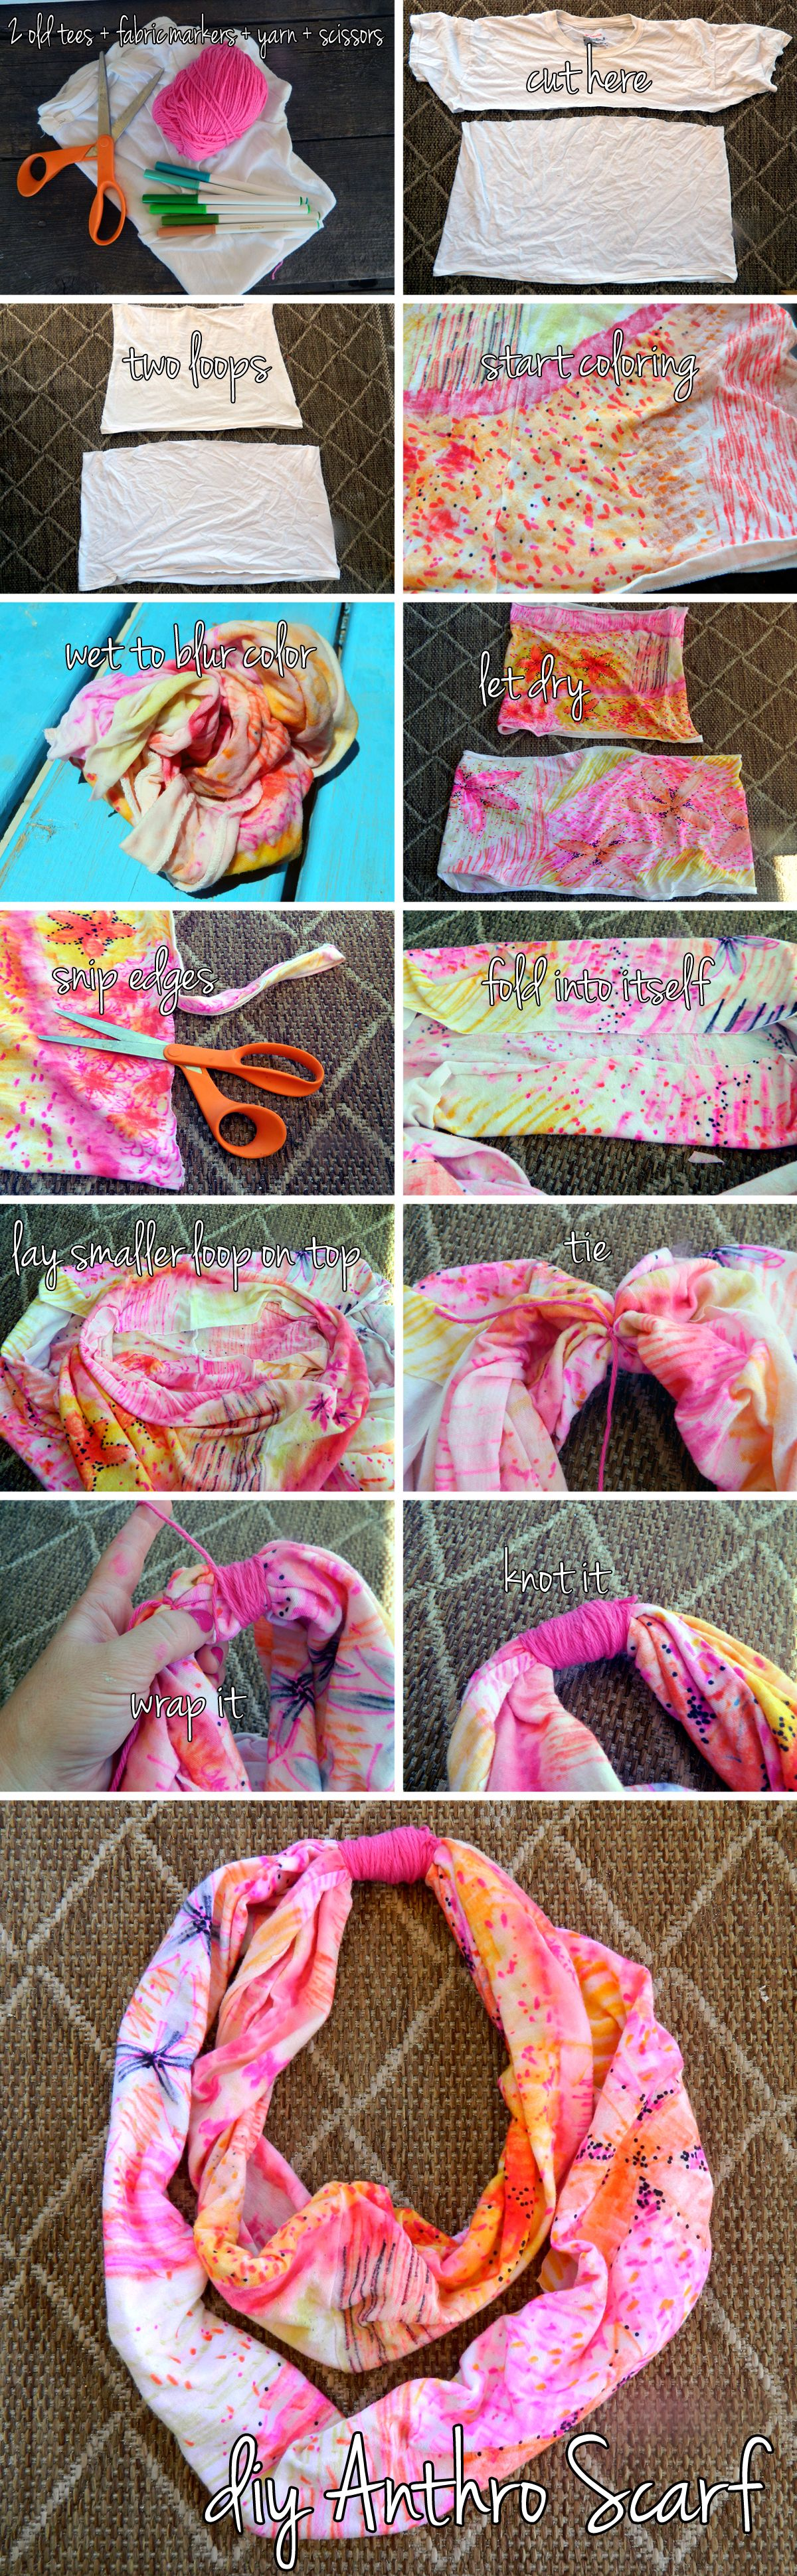 DIY Anthropologie Scarf